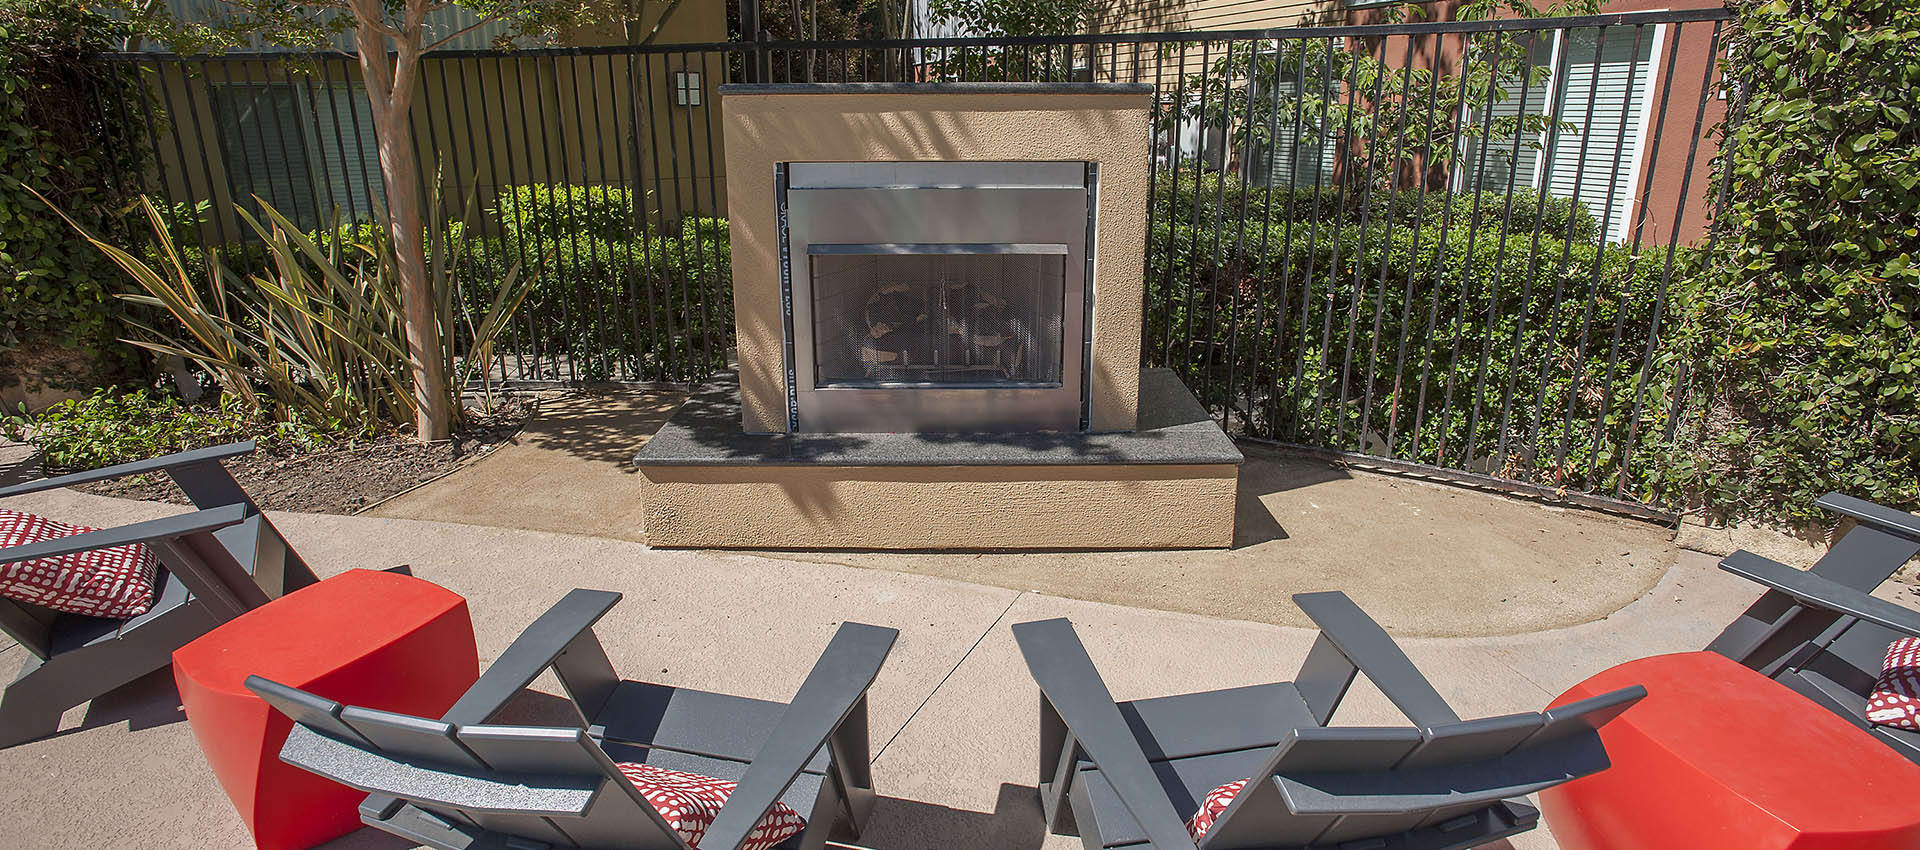 Outdoor Fireplace And Seating at Azure Apartment Homes in Petaluma, CA